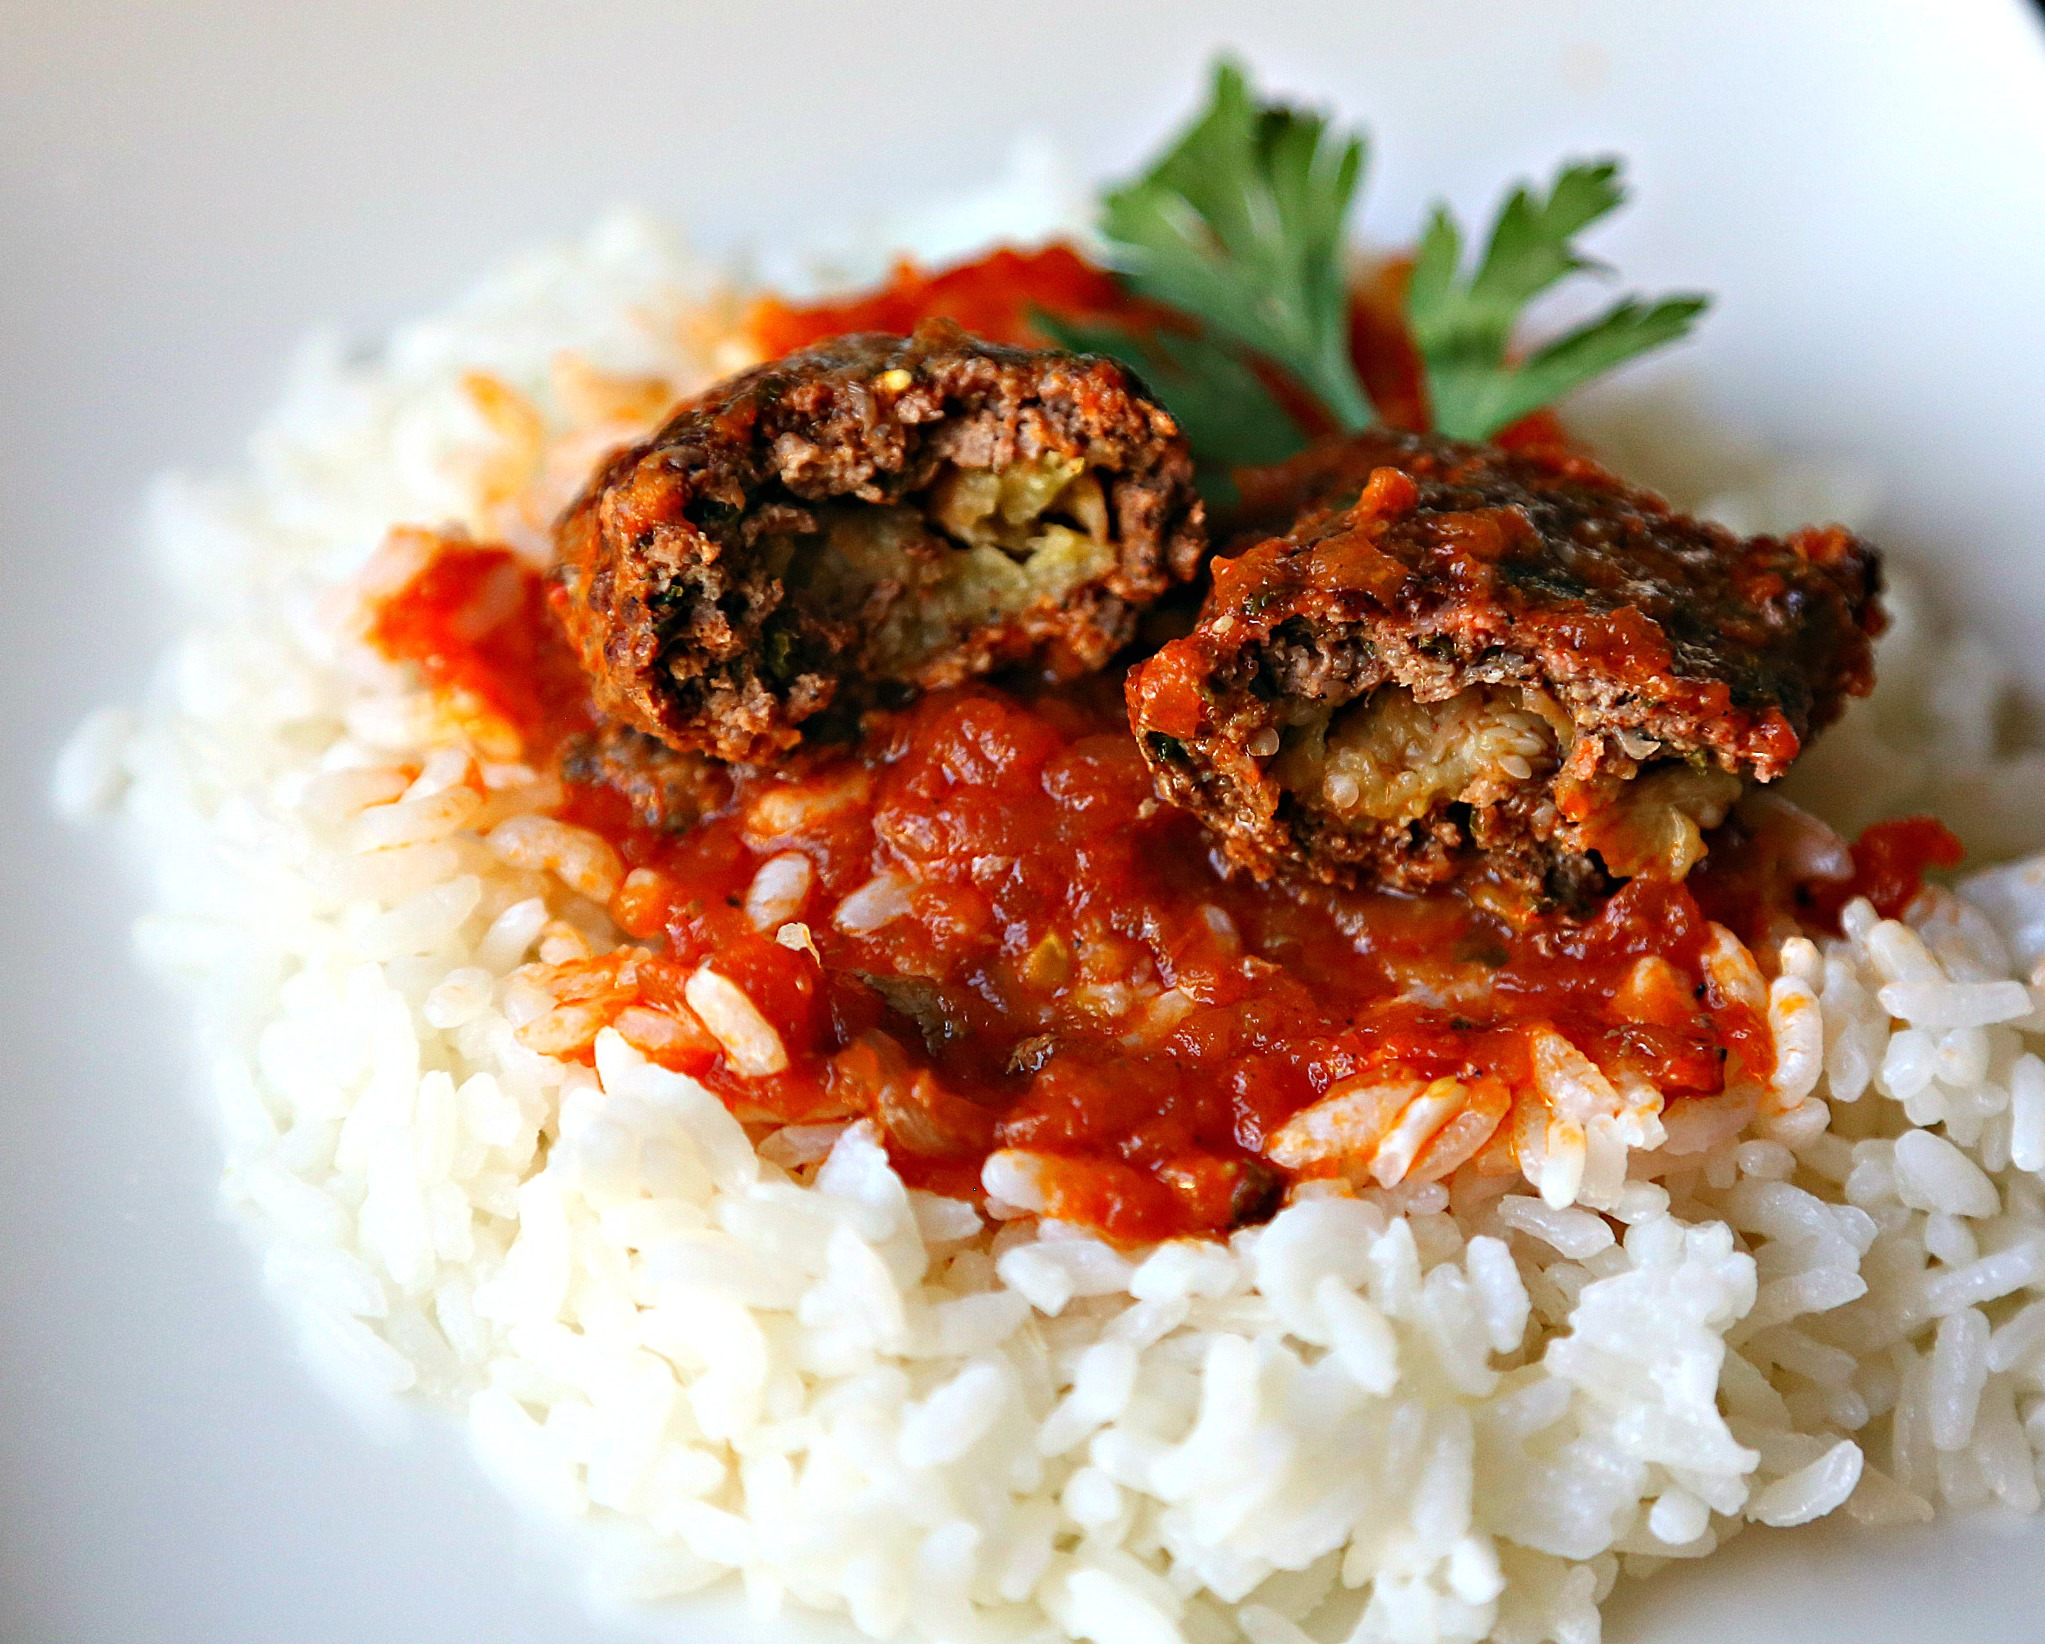 Turkish kofta